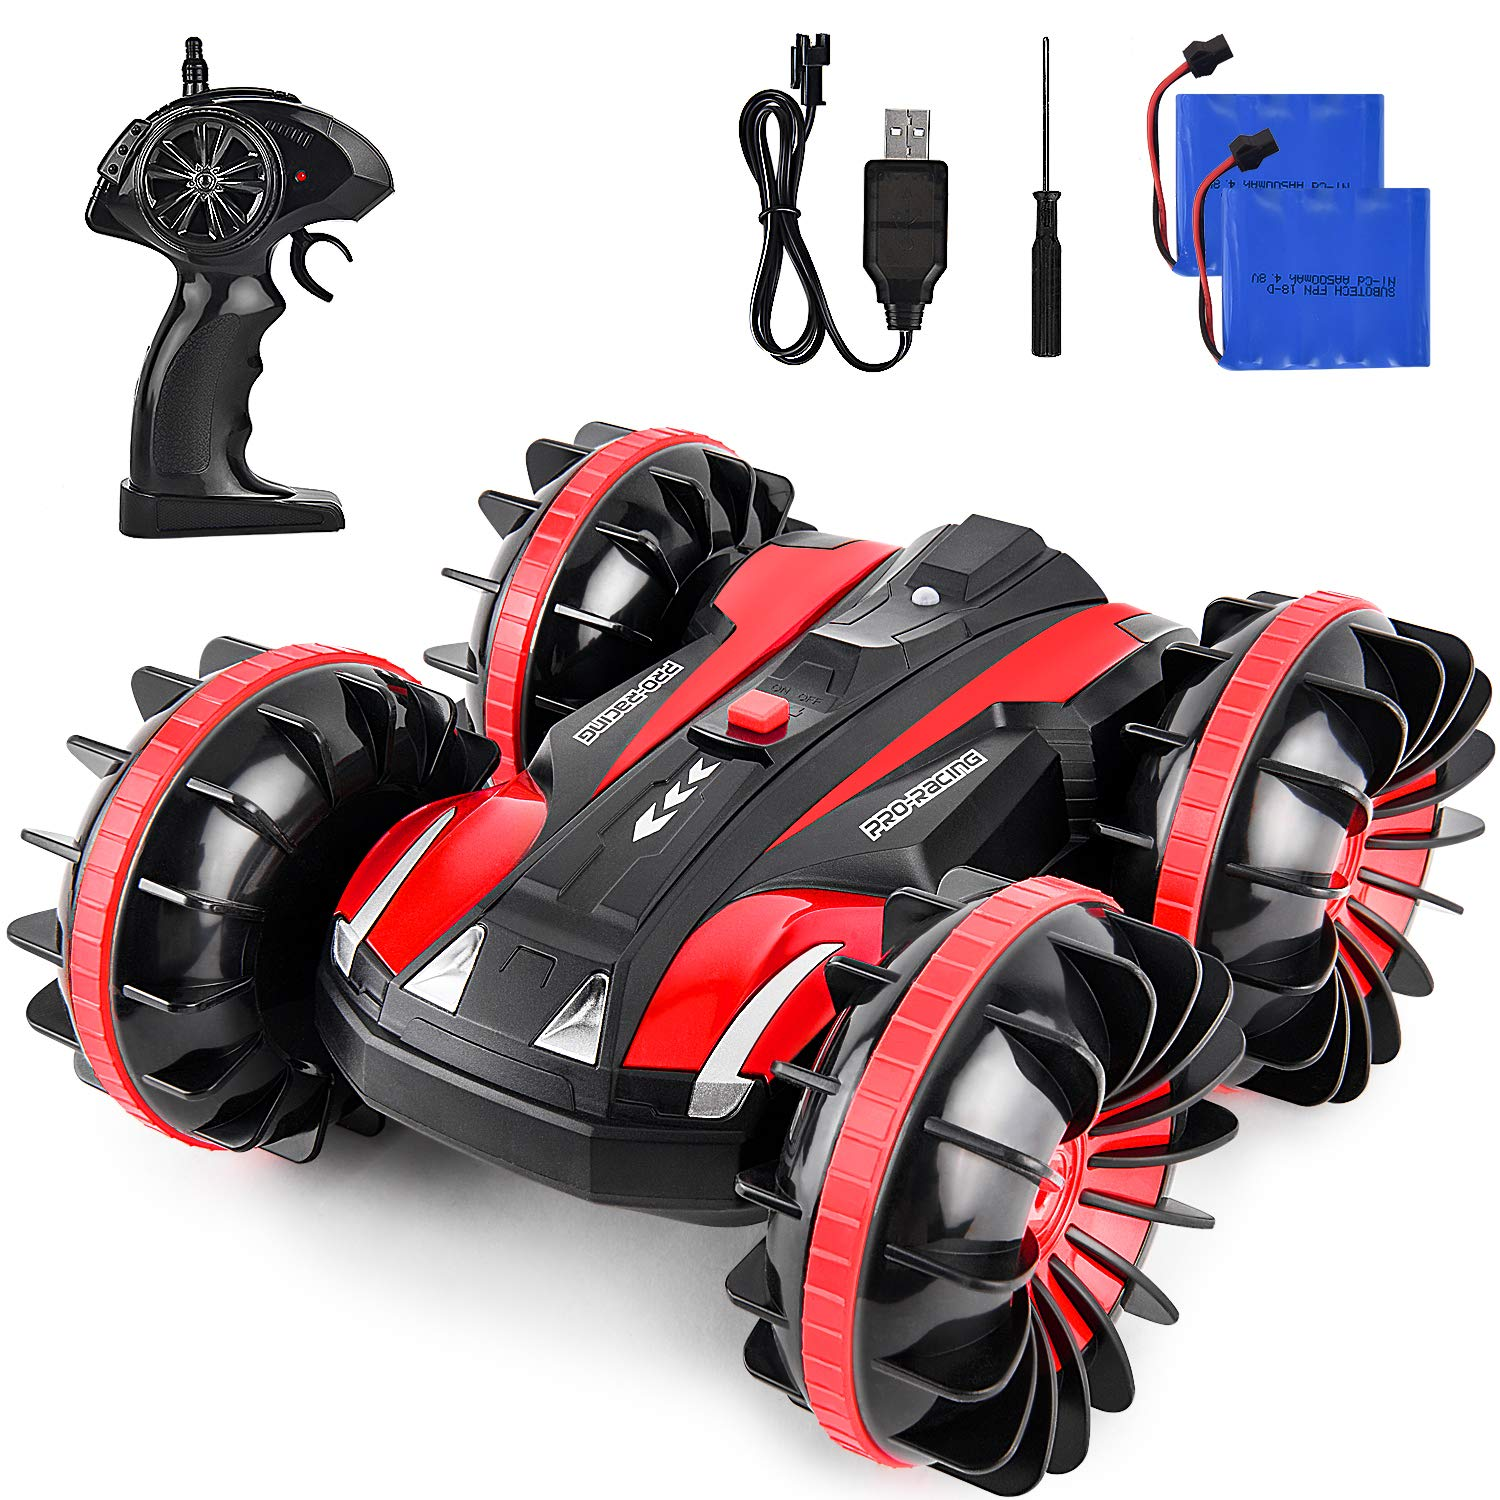 Waterproof RC Cars for Kids Remote Control Car Boat RC Truck Amphibious Stunt Car 4WD Off Road 2.4GHz Radio Controlled Vehicle 360 Degree Rotates Toys for 7-16 Year Old Boys Girls Birthday Gift Red by ROOYA BABY (Image #1)